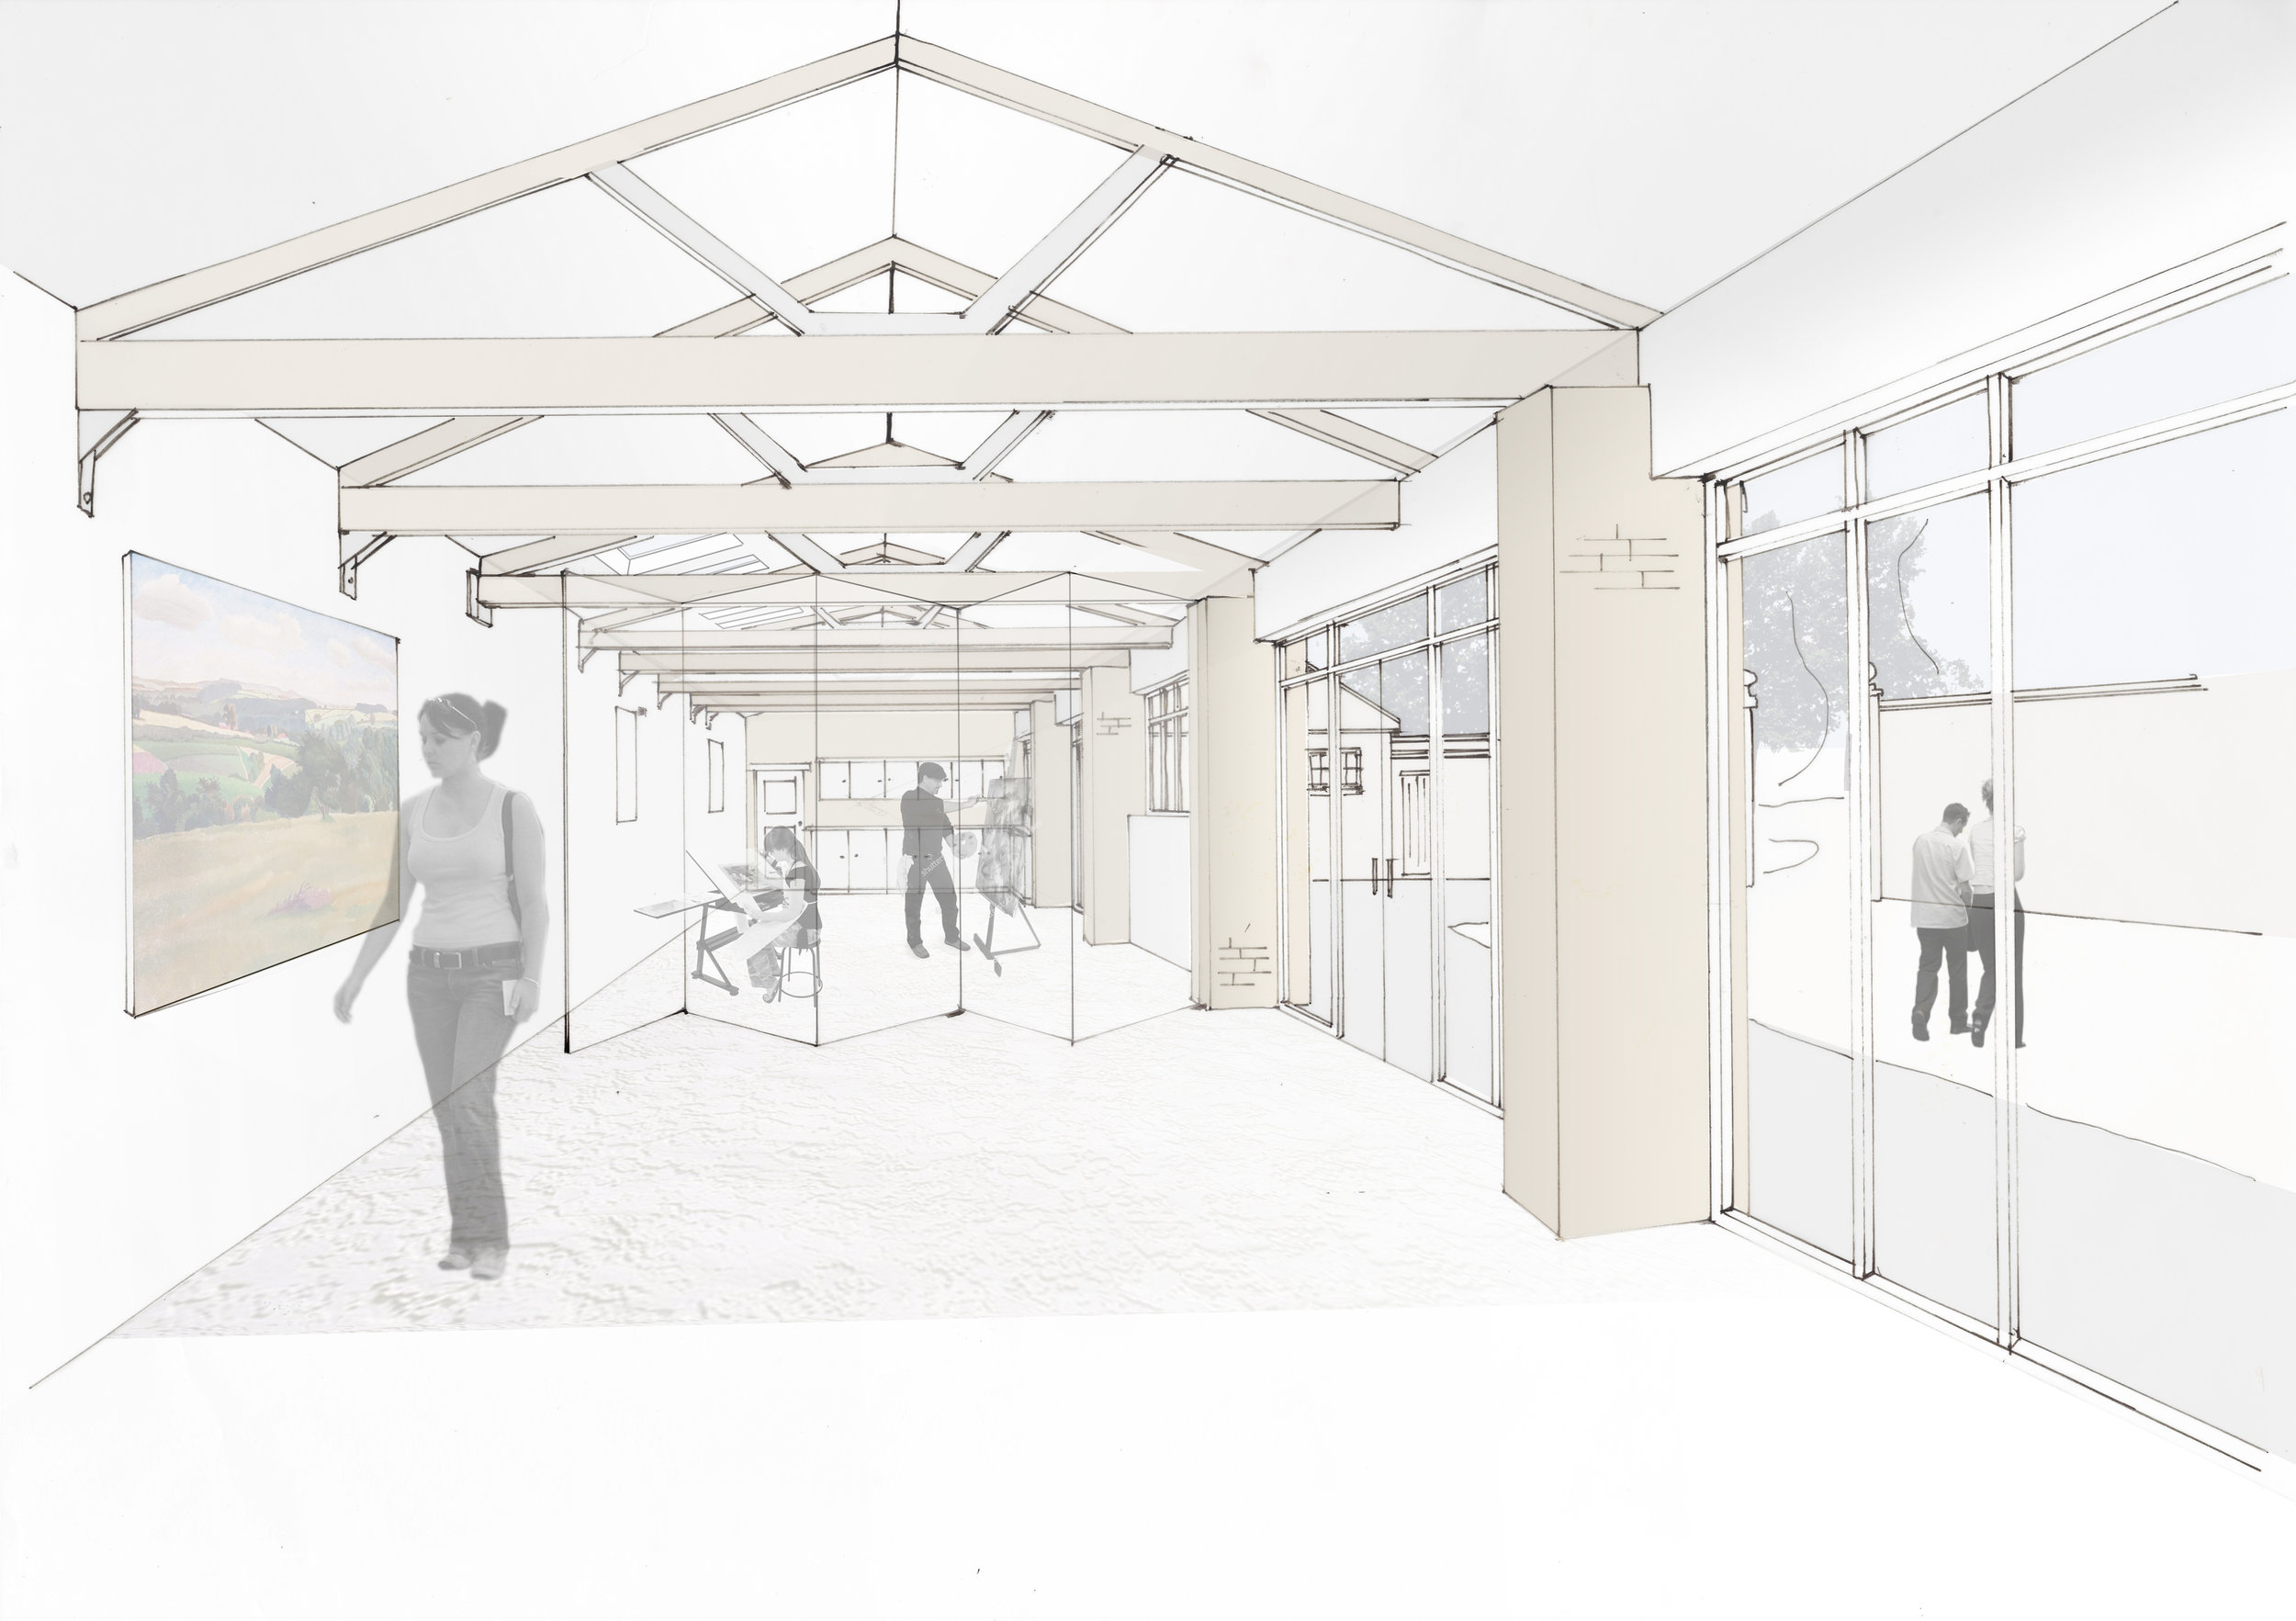 Stables - Sketch perspectives  NCA have recently been appointed to produce a feasibility scheme exploring how studio spaces may be incorporated into the existing storage areas to the rear of the stables.